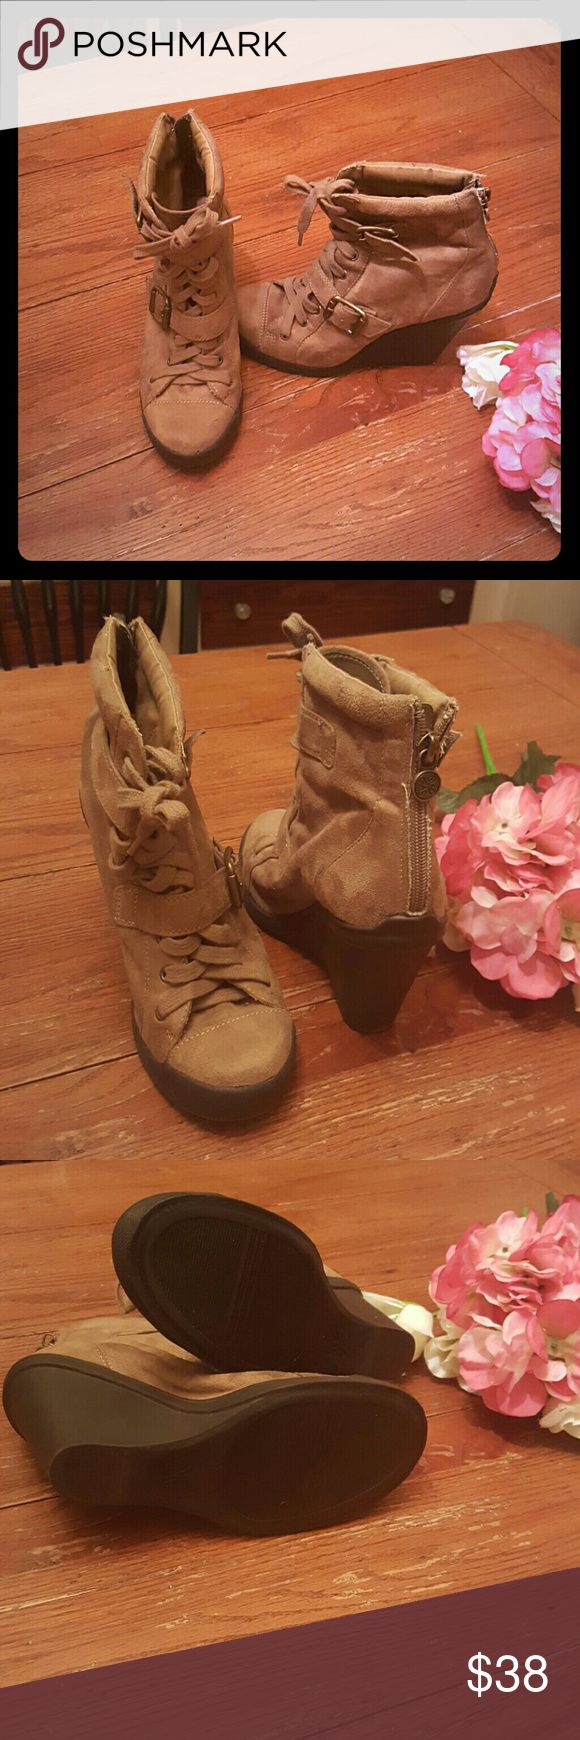 """❤Sale❤ [Simply Vera] Brown Heeled Boots Simply Vera Vera Wang Brown Heeled Boots Size 6.5 4"""" Heel Extremely Comfortable  Lightly Used Simply Vera Vera Wang Shoes Heeled Boots"""